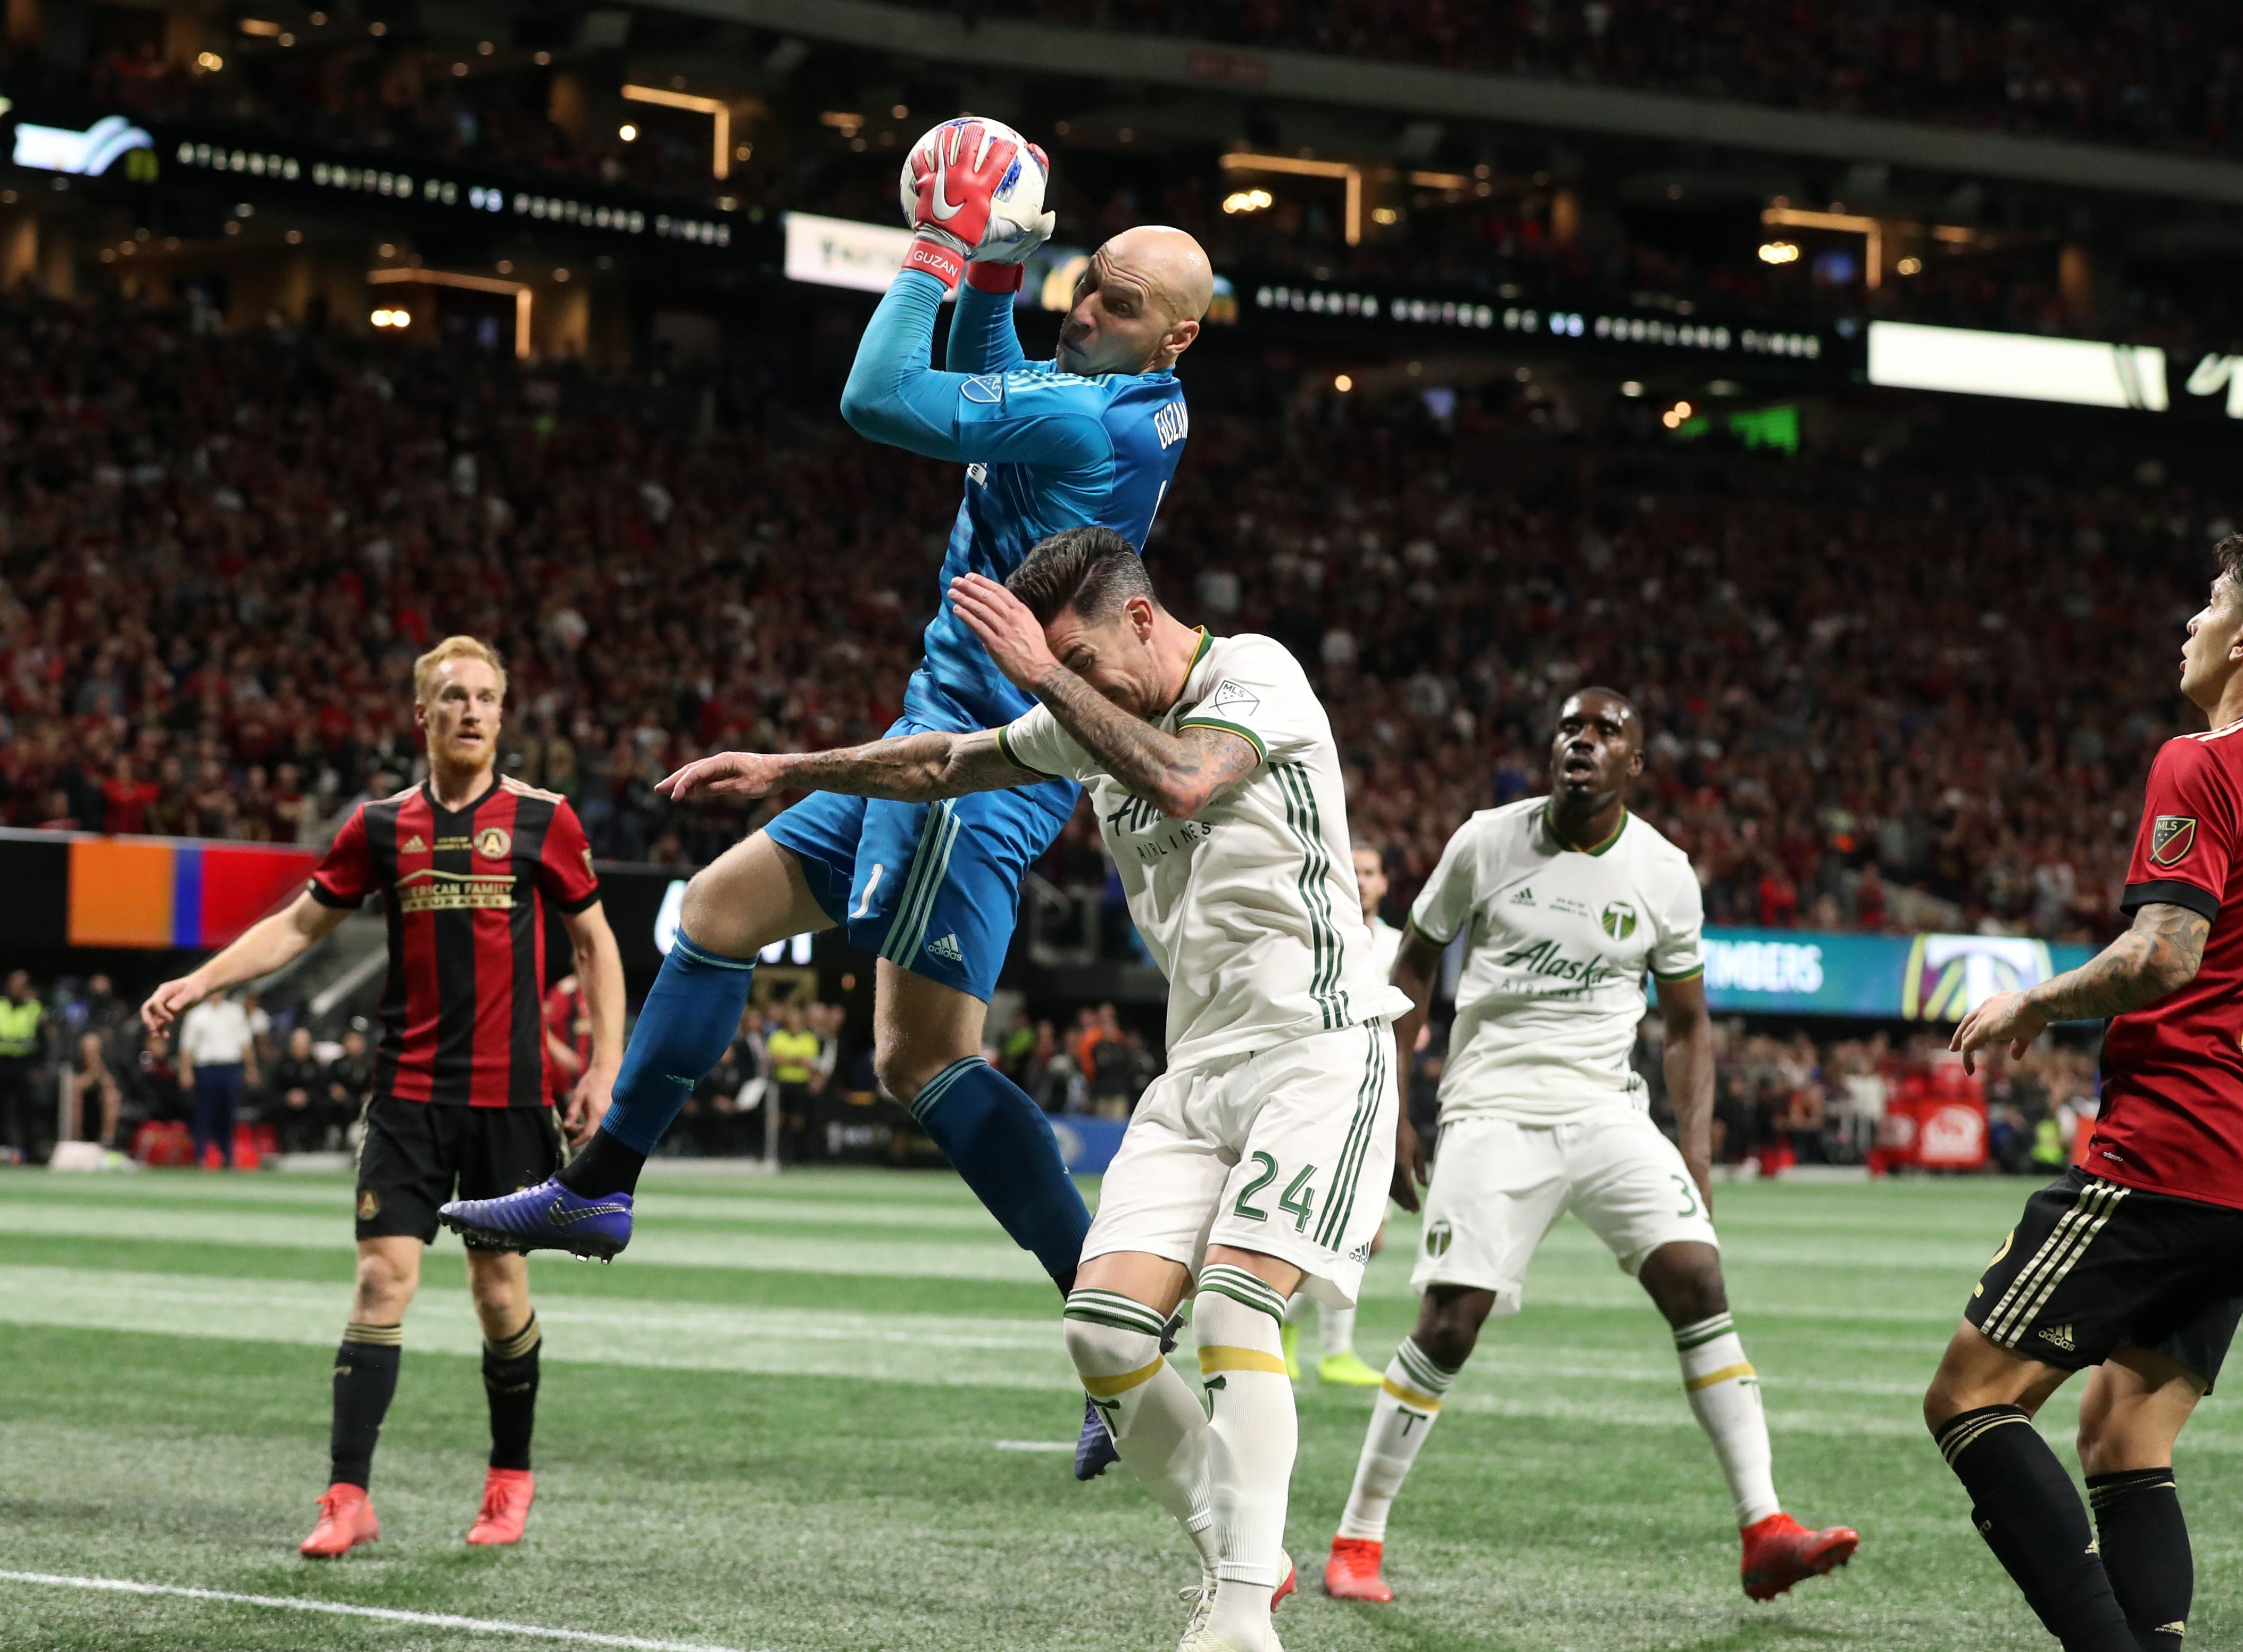 Atlanta United goalkeeper Brad Guzan (1) makes a save against Portland Timbers defender Liam Ridgewell (24) during the second half of the 2018 MLS Cup.